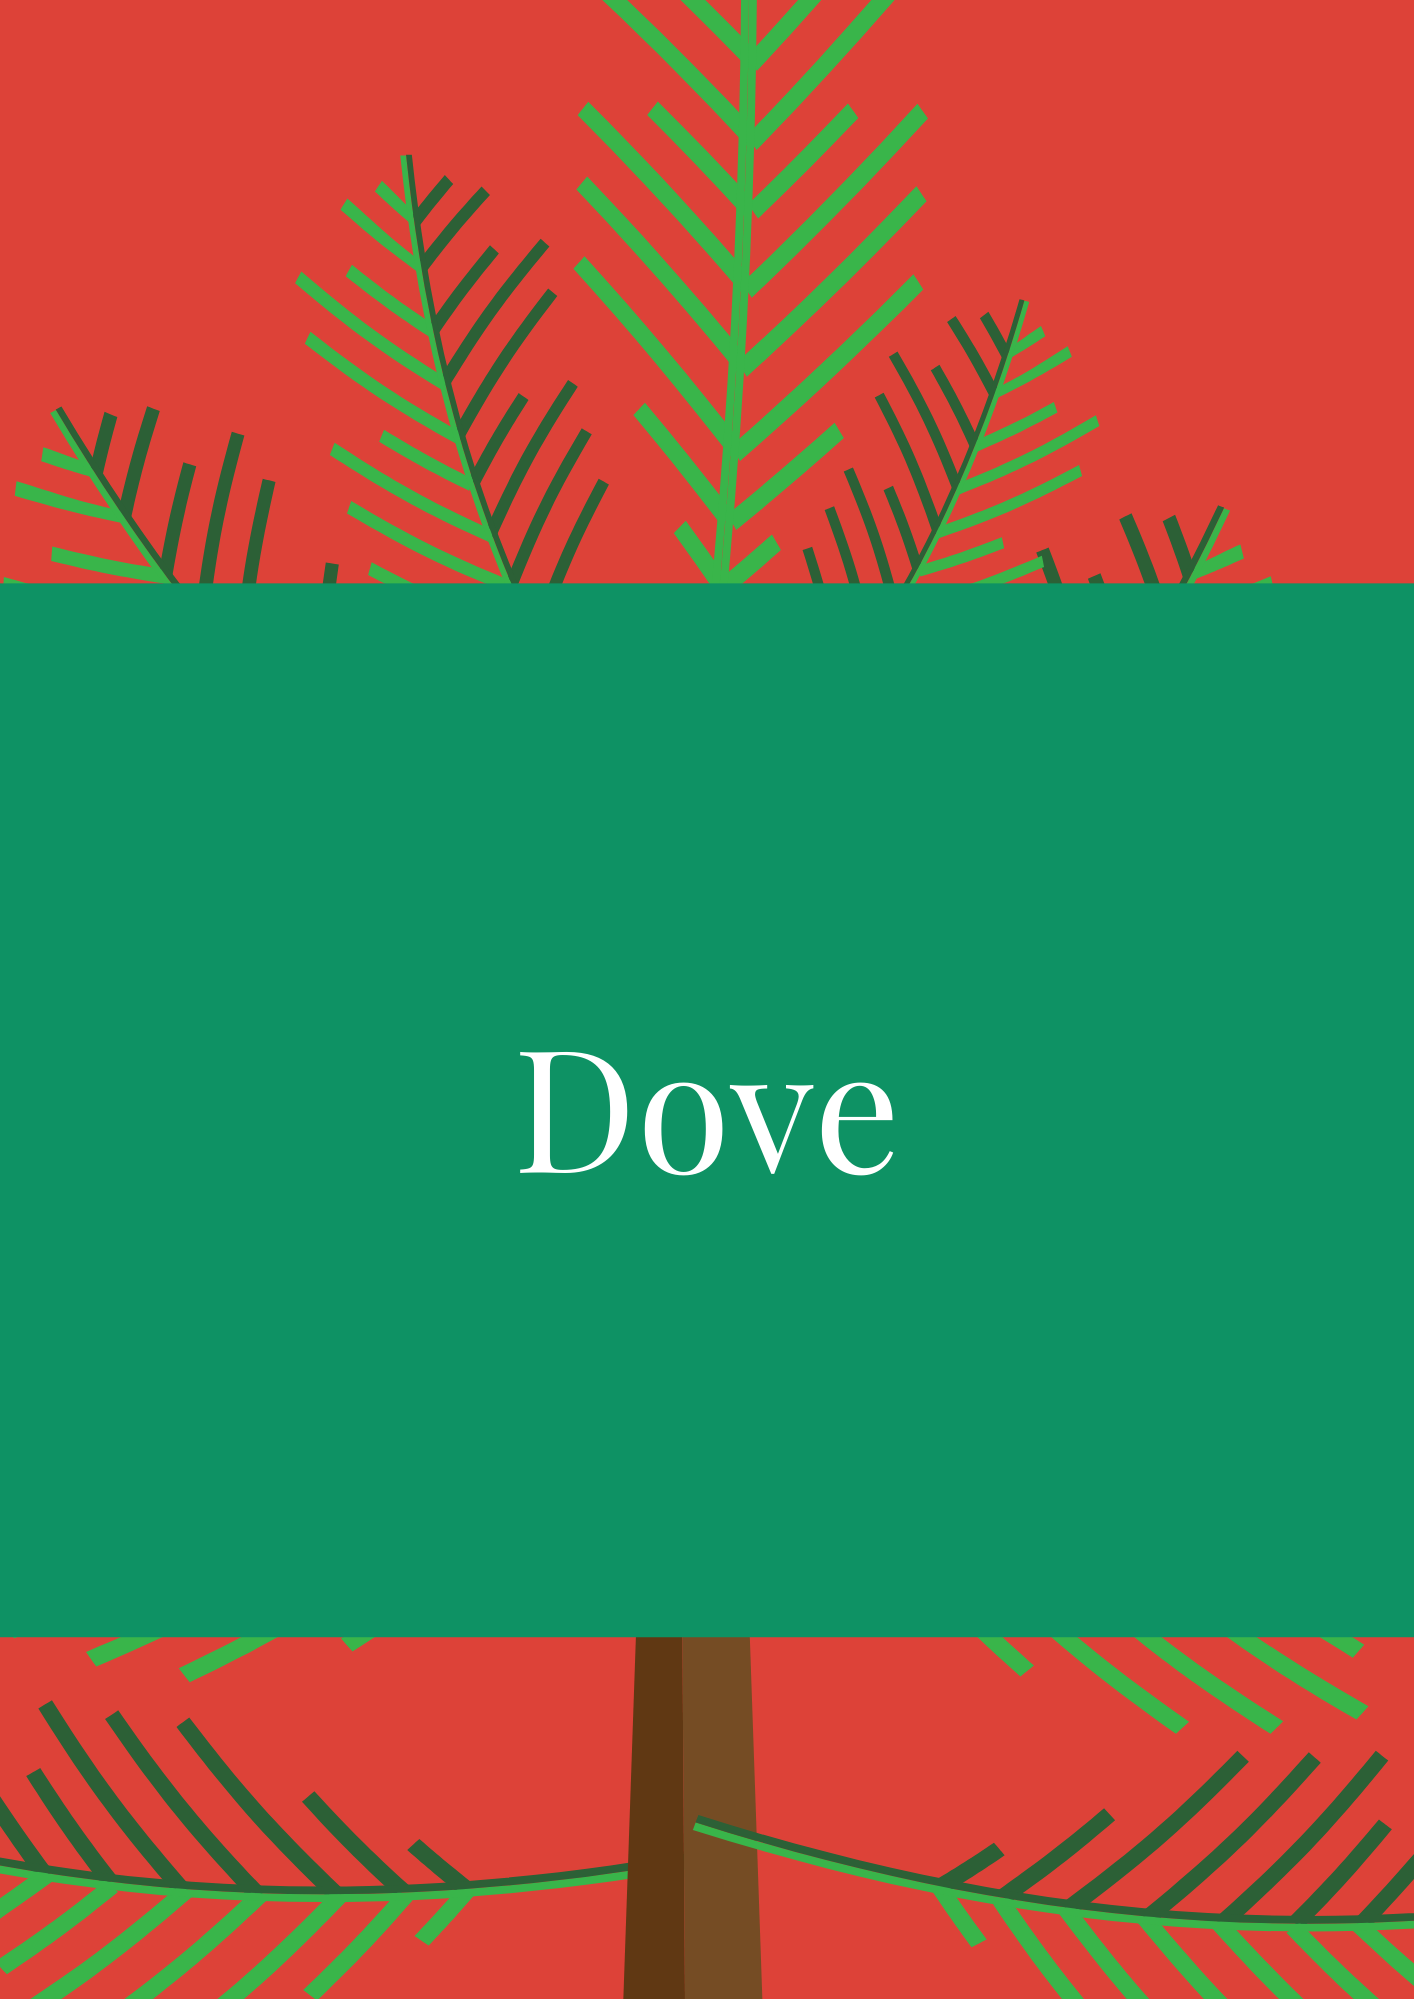 Dove Elf Names